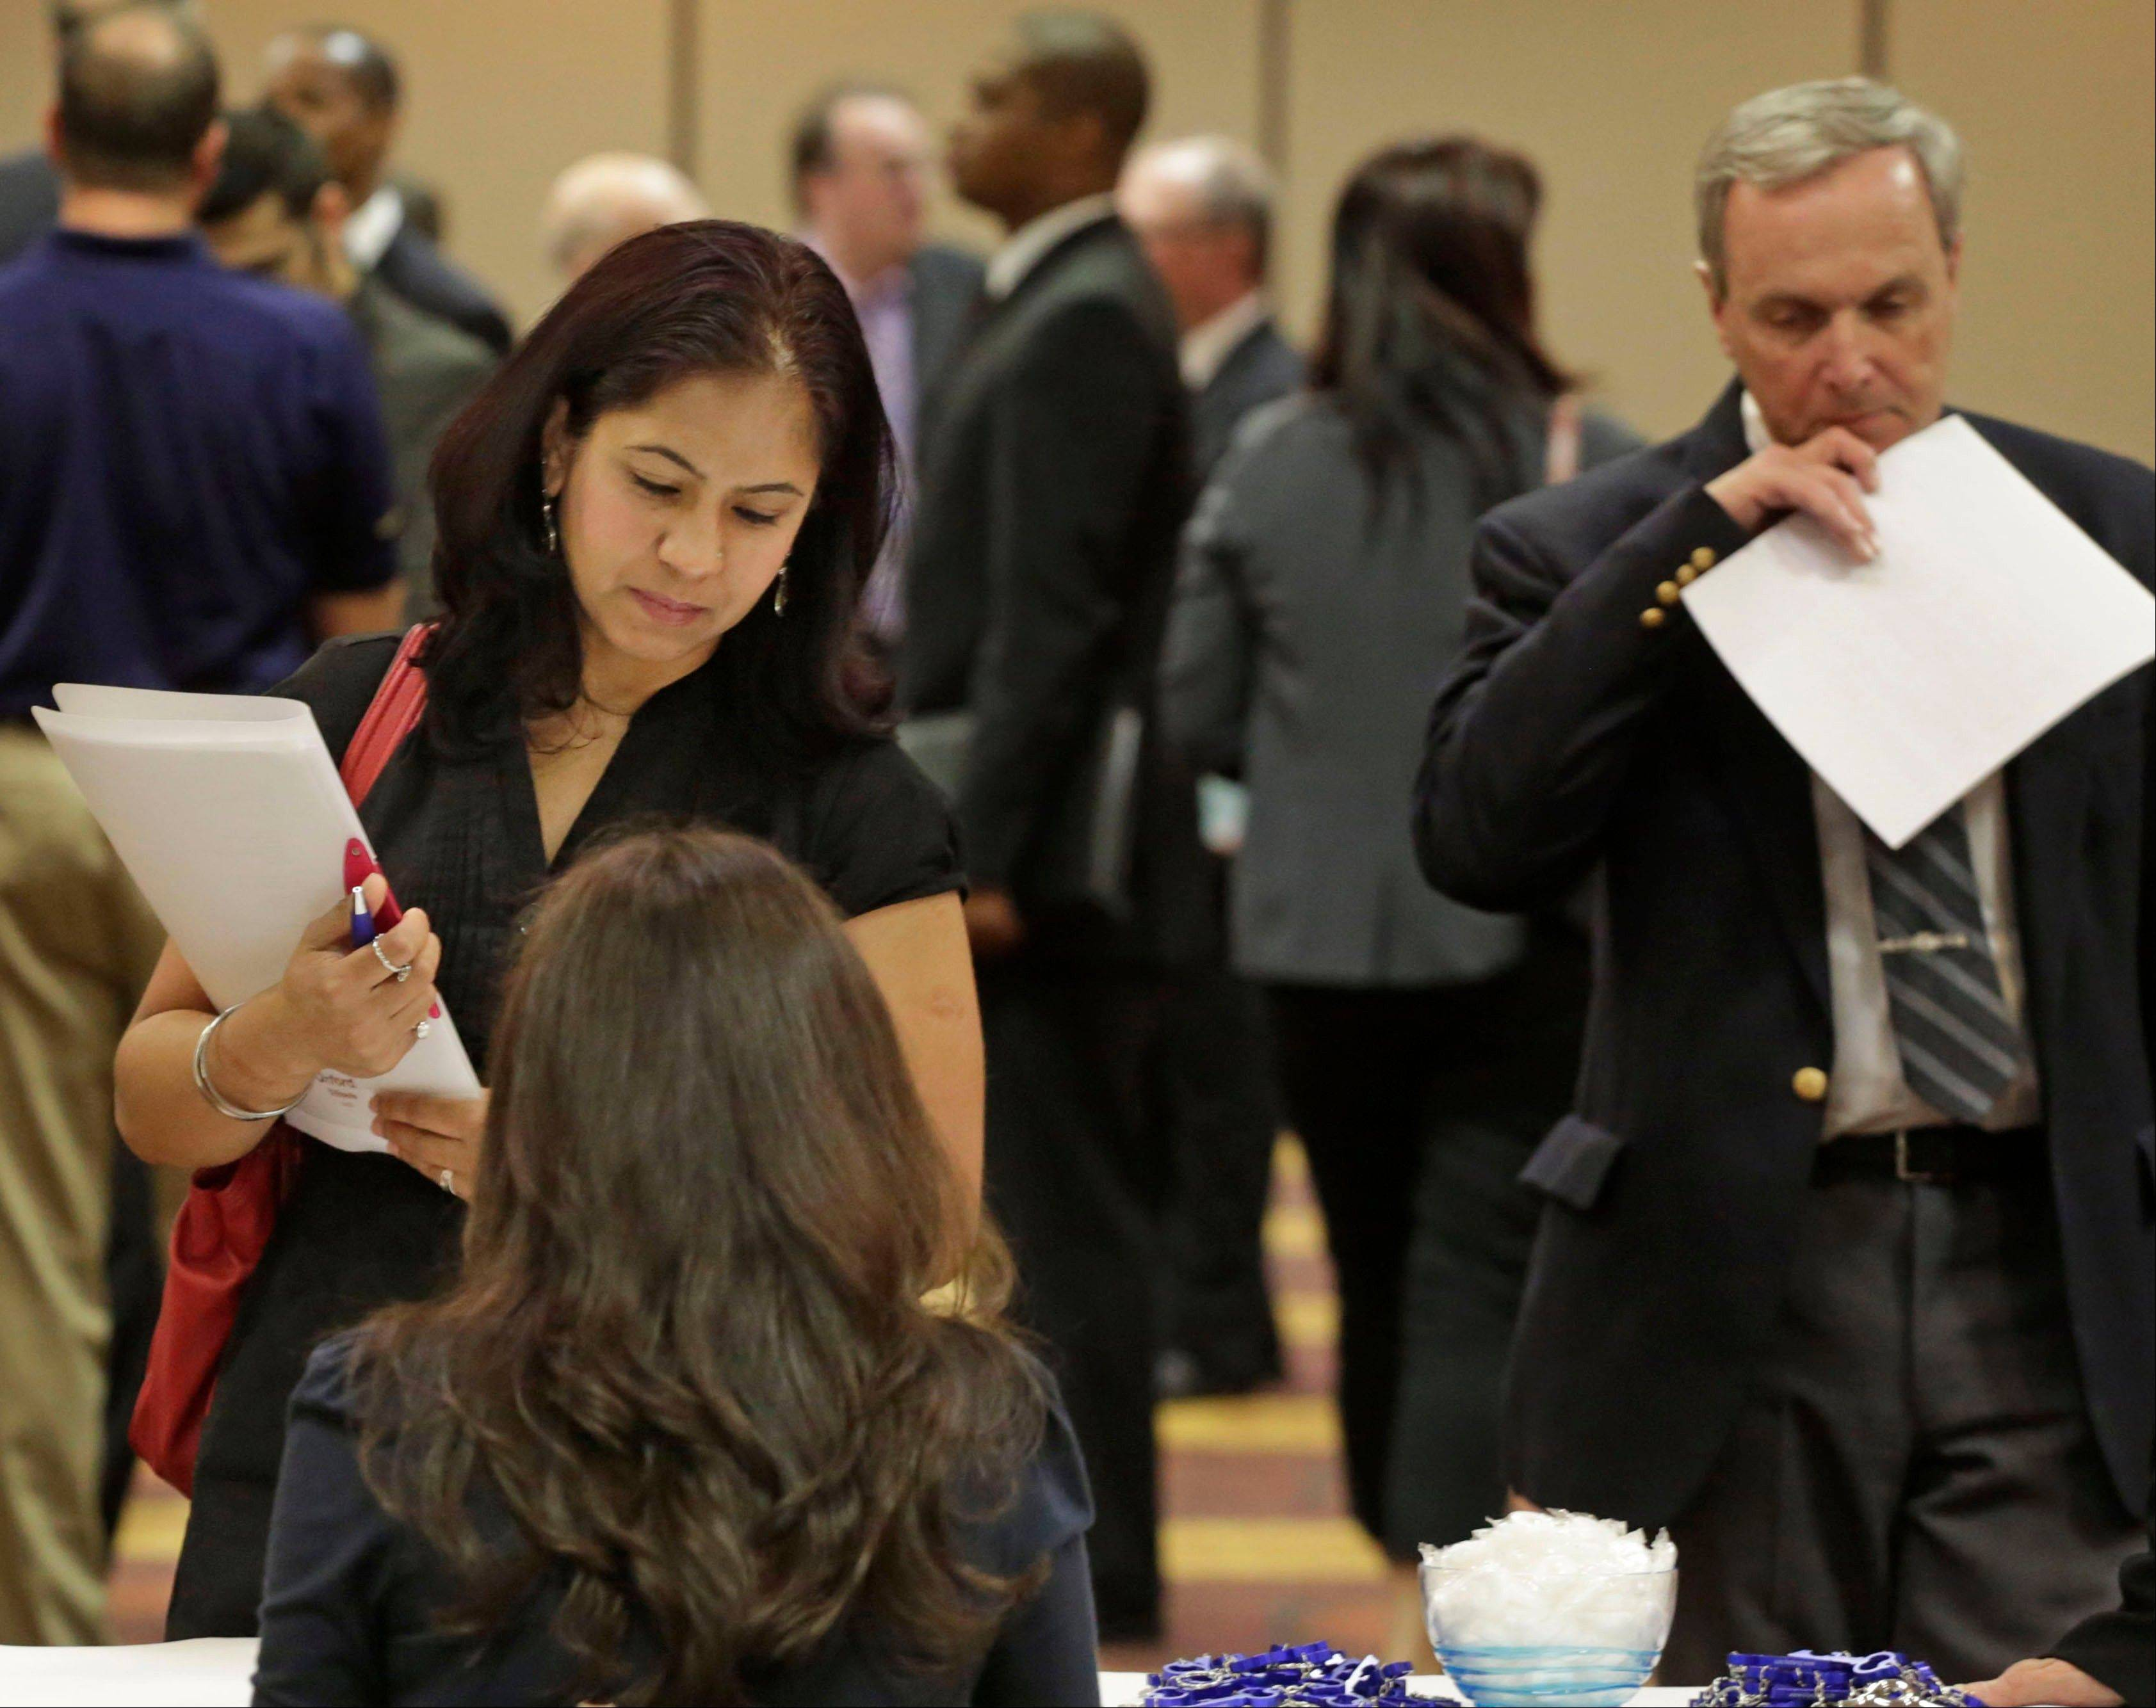 Jobseeker Anu Vatal of Chicago speaks with Patrice Tosi of BluePay, seated, during a career fair in Rolling Meadow. The government The Labor Department said Friday that the unemployment rate rose to 7.6 percent from 7.5 percent in April.